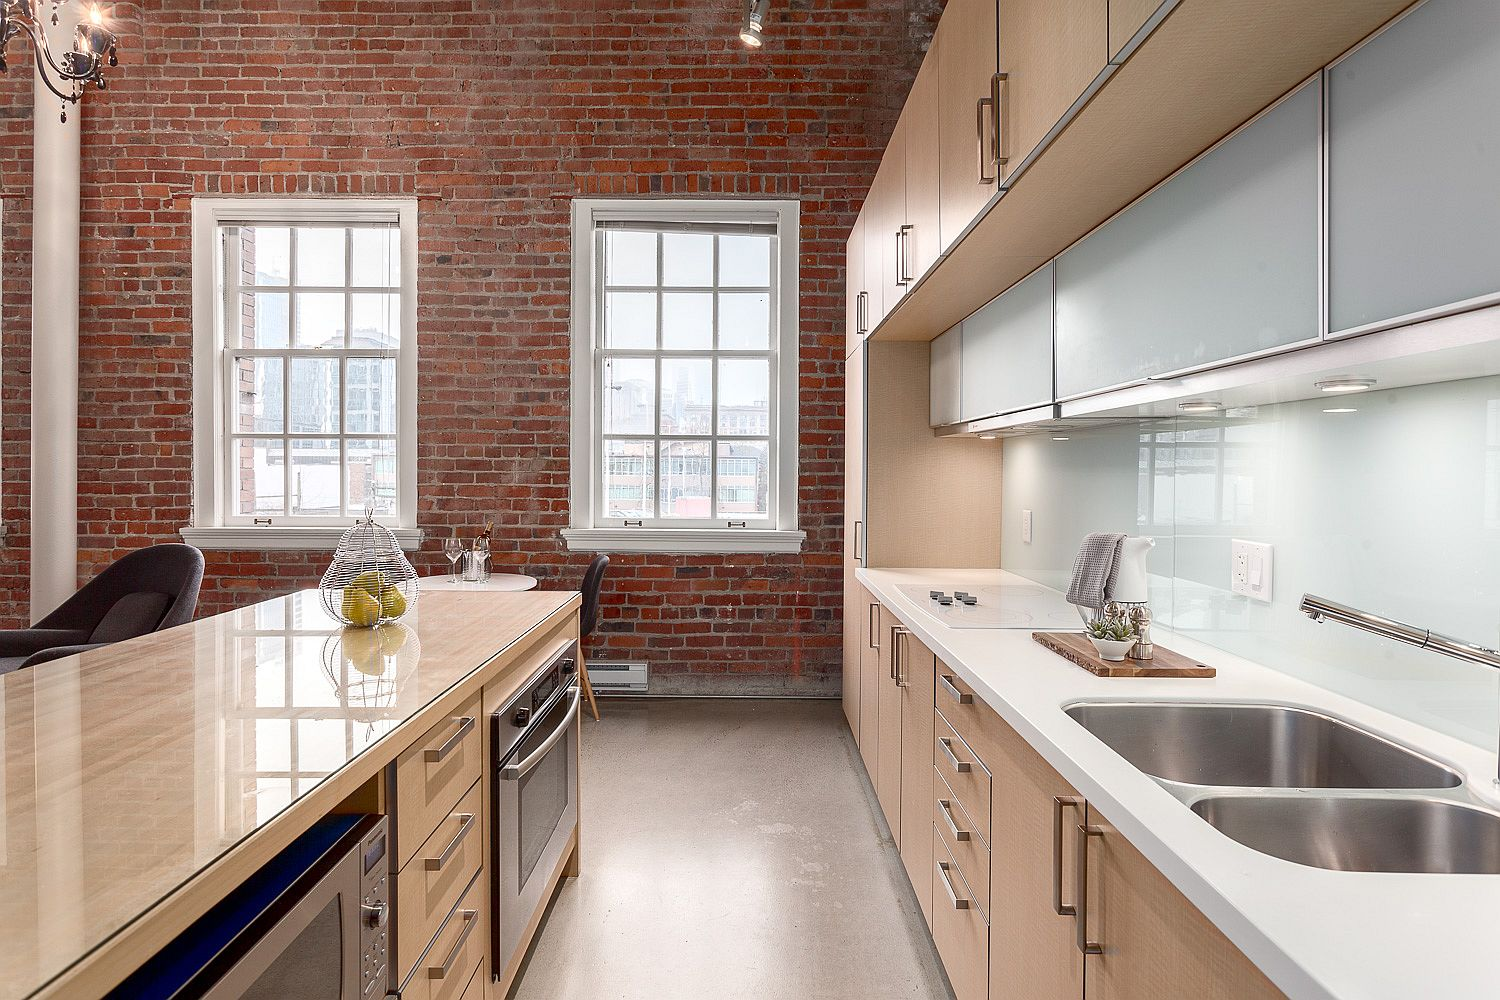 Exposed brick wall also gives the kitchen a fabulous modern-industrial look